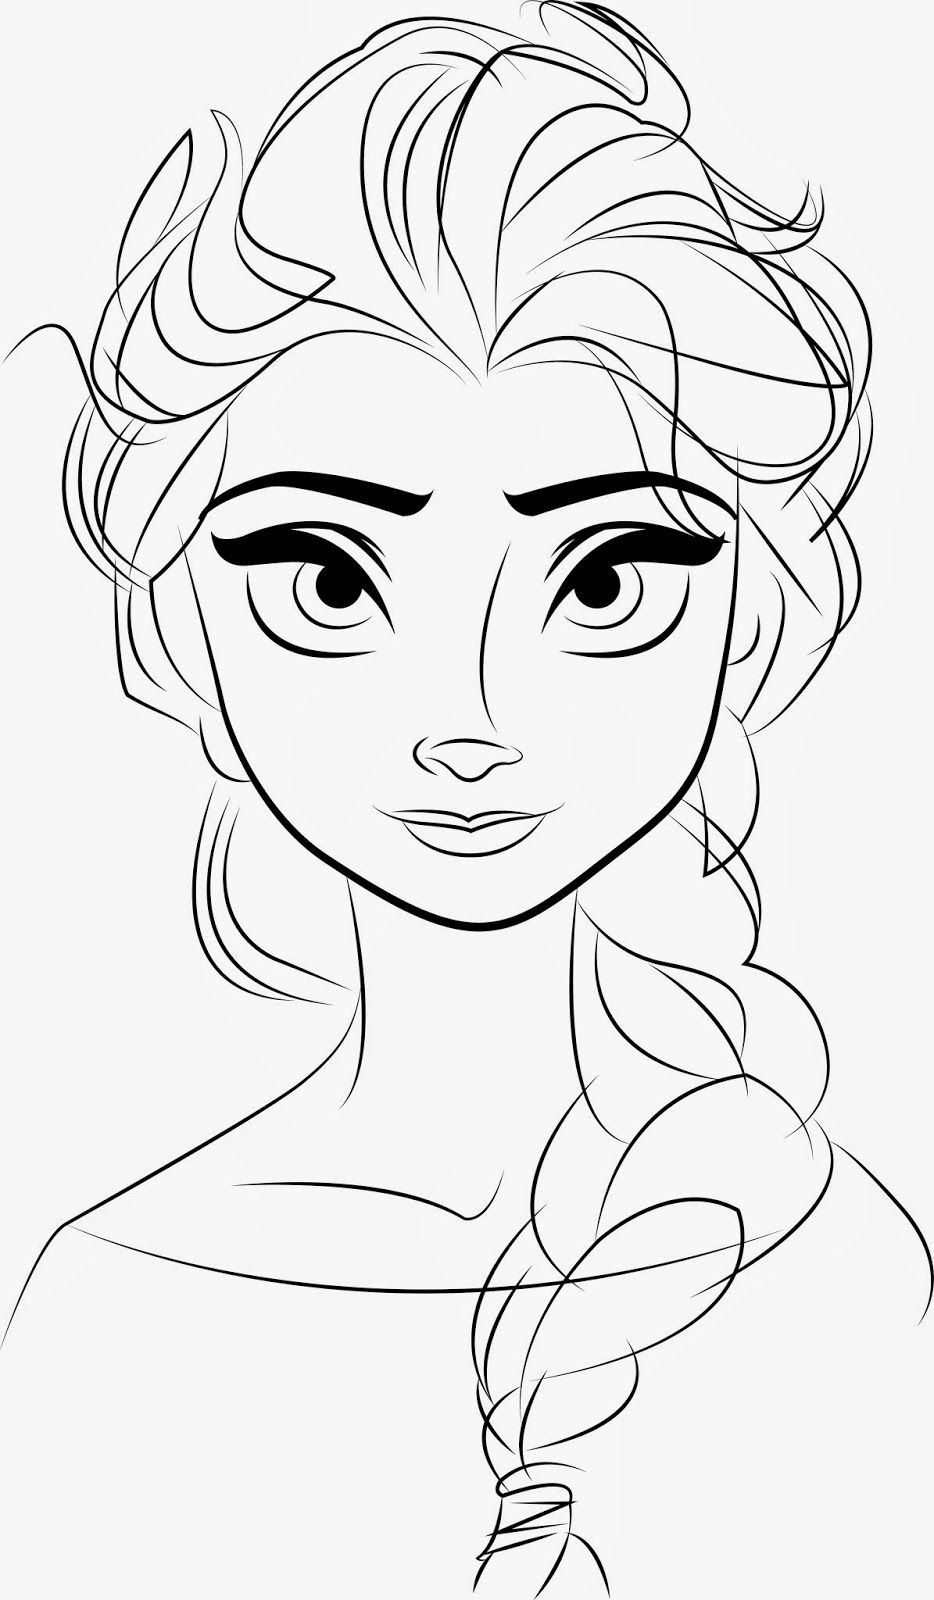 Line Drawing Disney : Disney frozen elsa line drawings google search tee